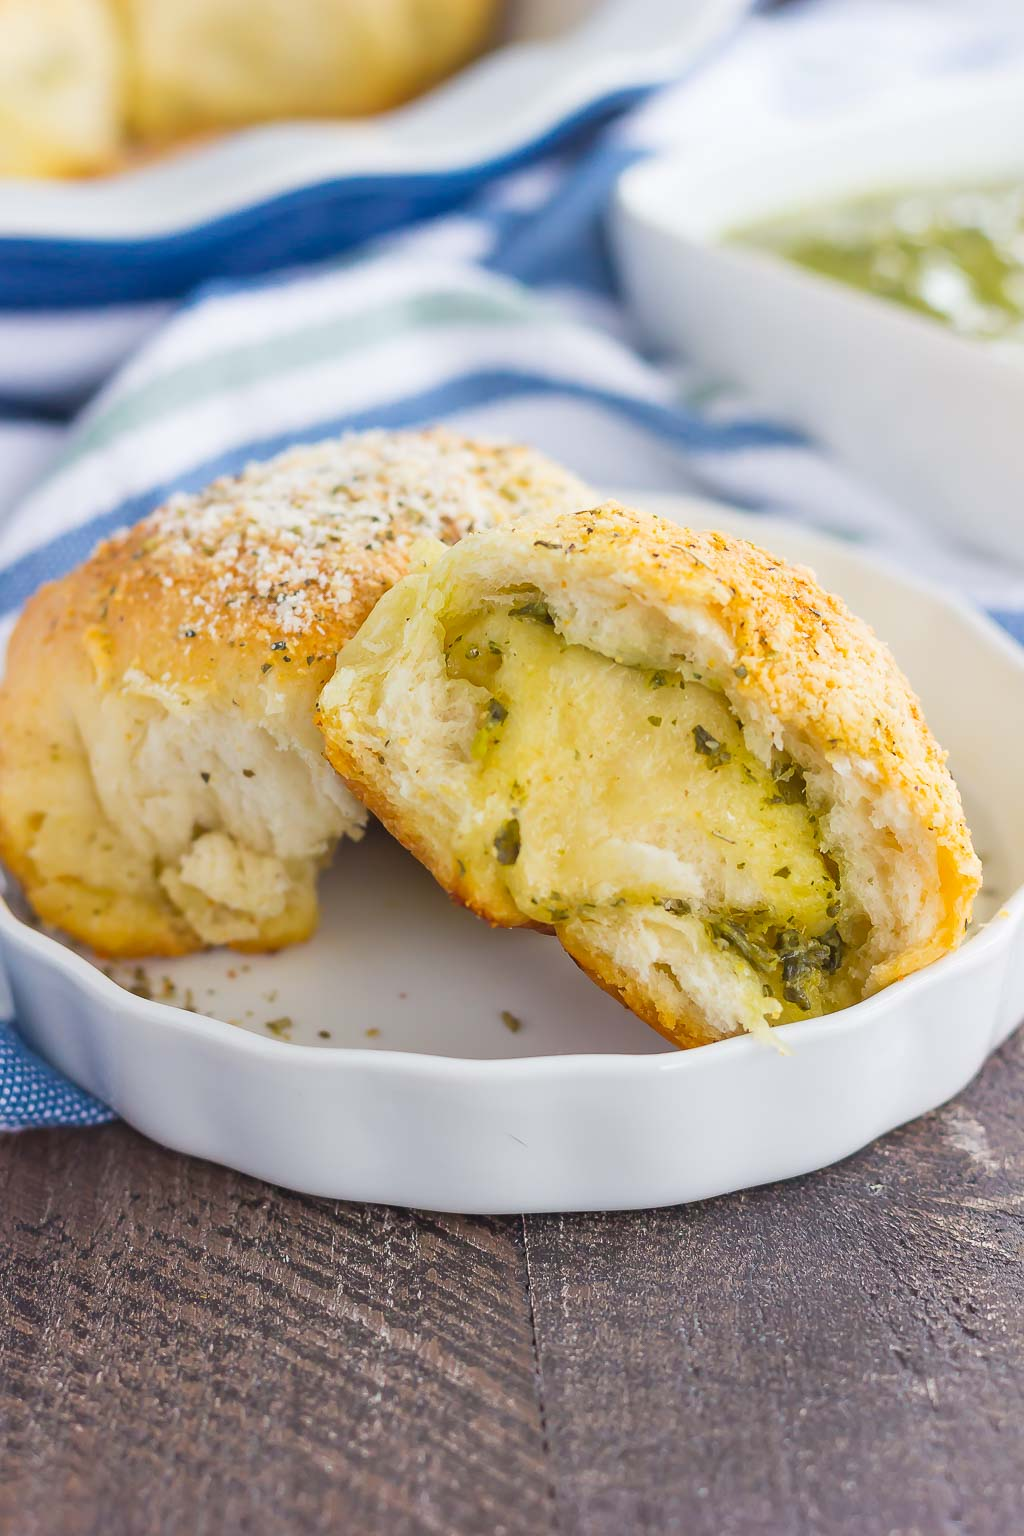 These Stuffed Cheesy Pesto Rolls are an easy dish to make for those hungry dinner guests. Soft and buttery rolls are filled with pesto sauce and mozzarella cheese, and then baked until golden. Crispy on the outsize and oozing with flavor on the inside, this simple roll is sure to wow even the pickiest of eaters!